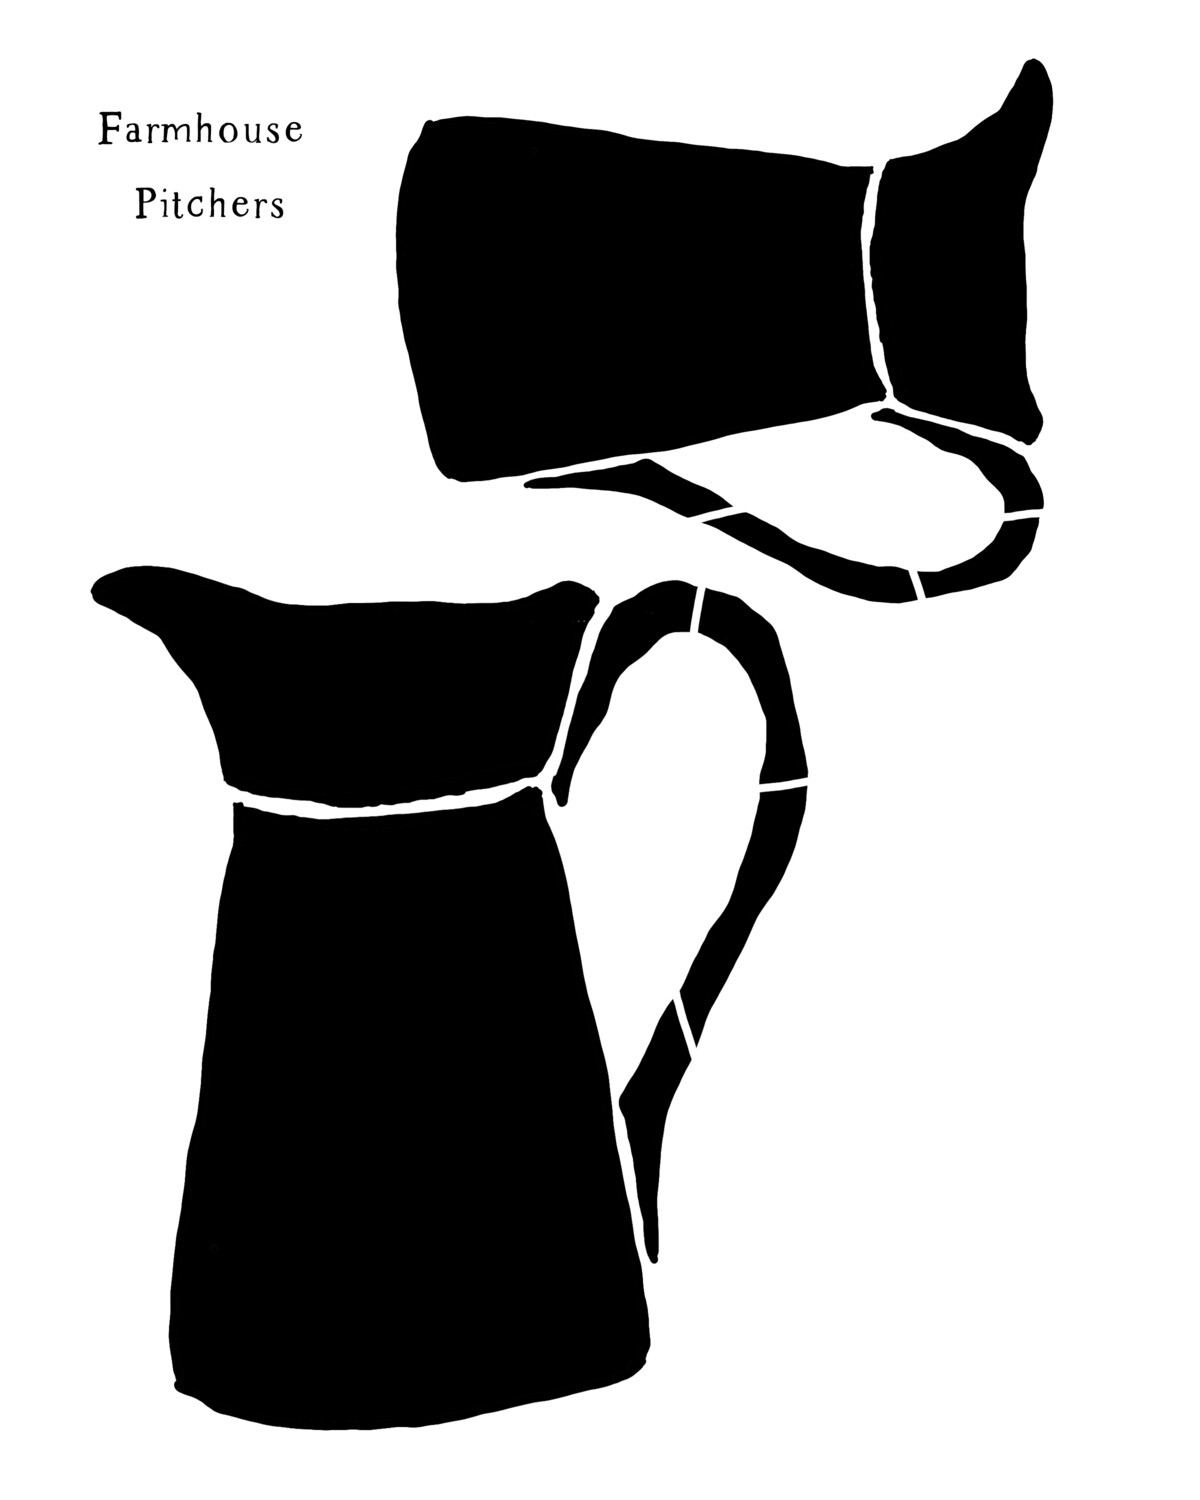 Farmhouse Pitchers 8x10 stencil